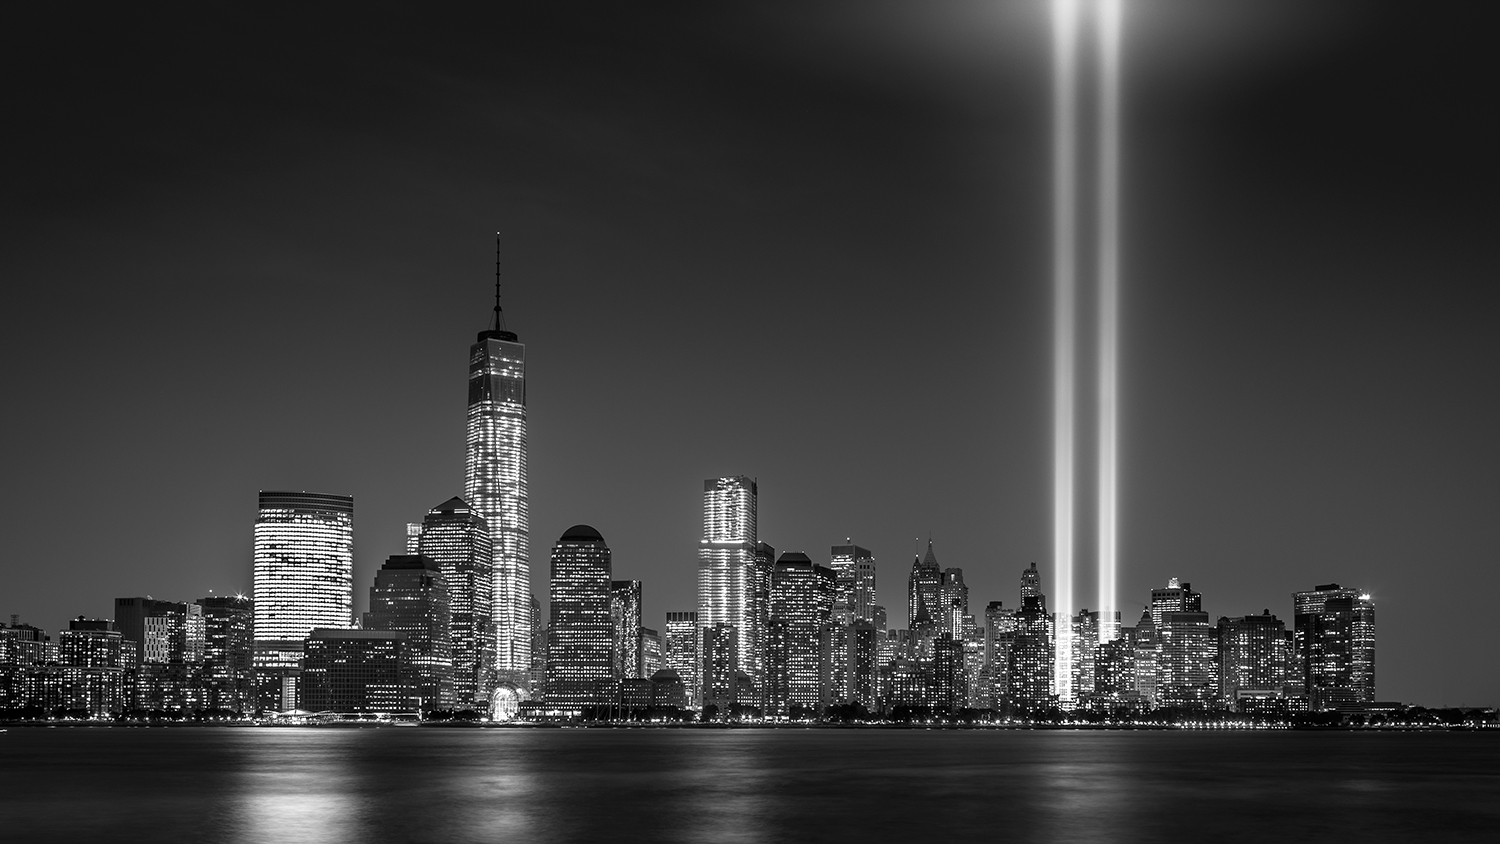 NYC skyline with Twin Towers lit up